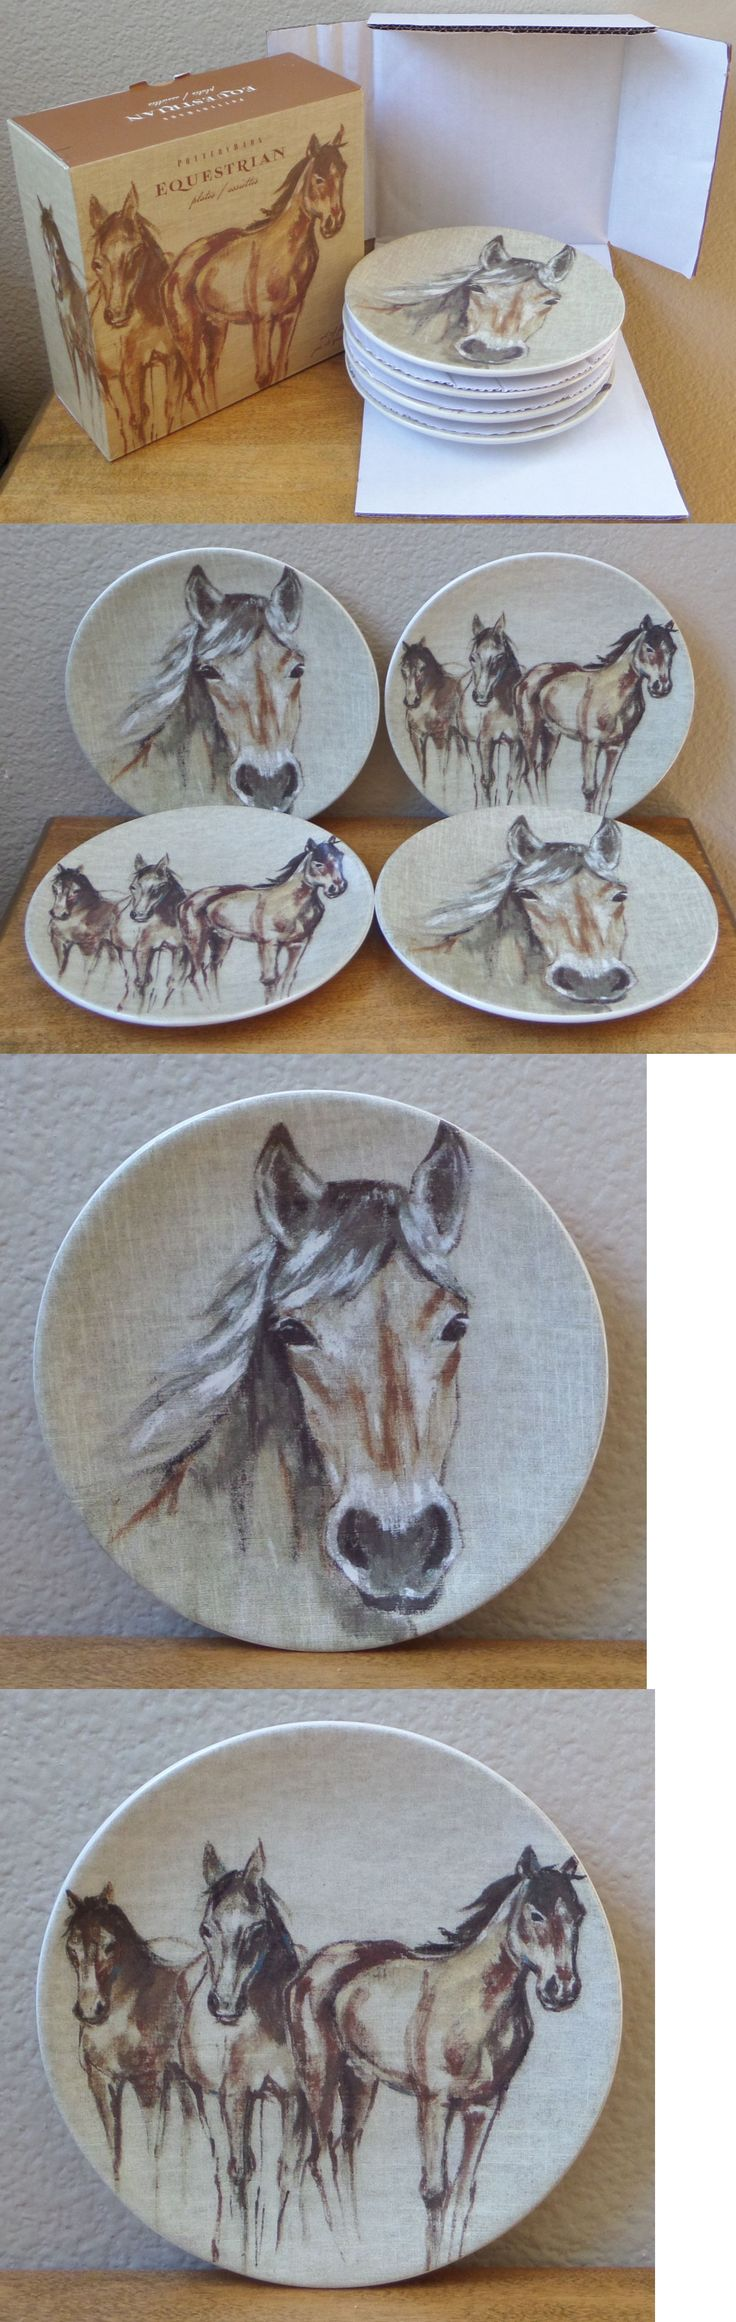 Plates 36030: Nib Set Of Four Pottery Barn Equestrian Horse Cocktail Appetizer Plates - 6 -> BUY IT NOW ONLY: $30.95 on eBay!